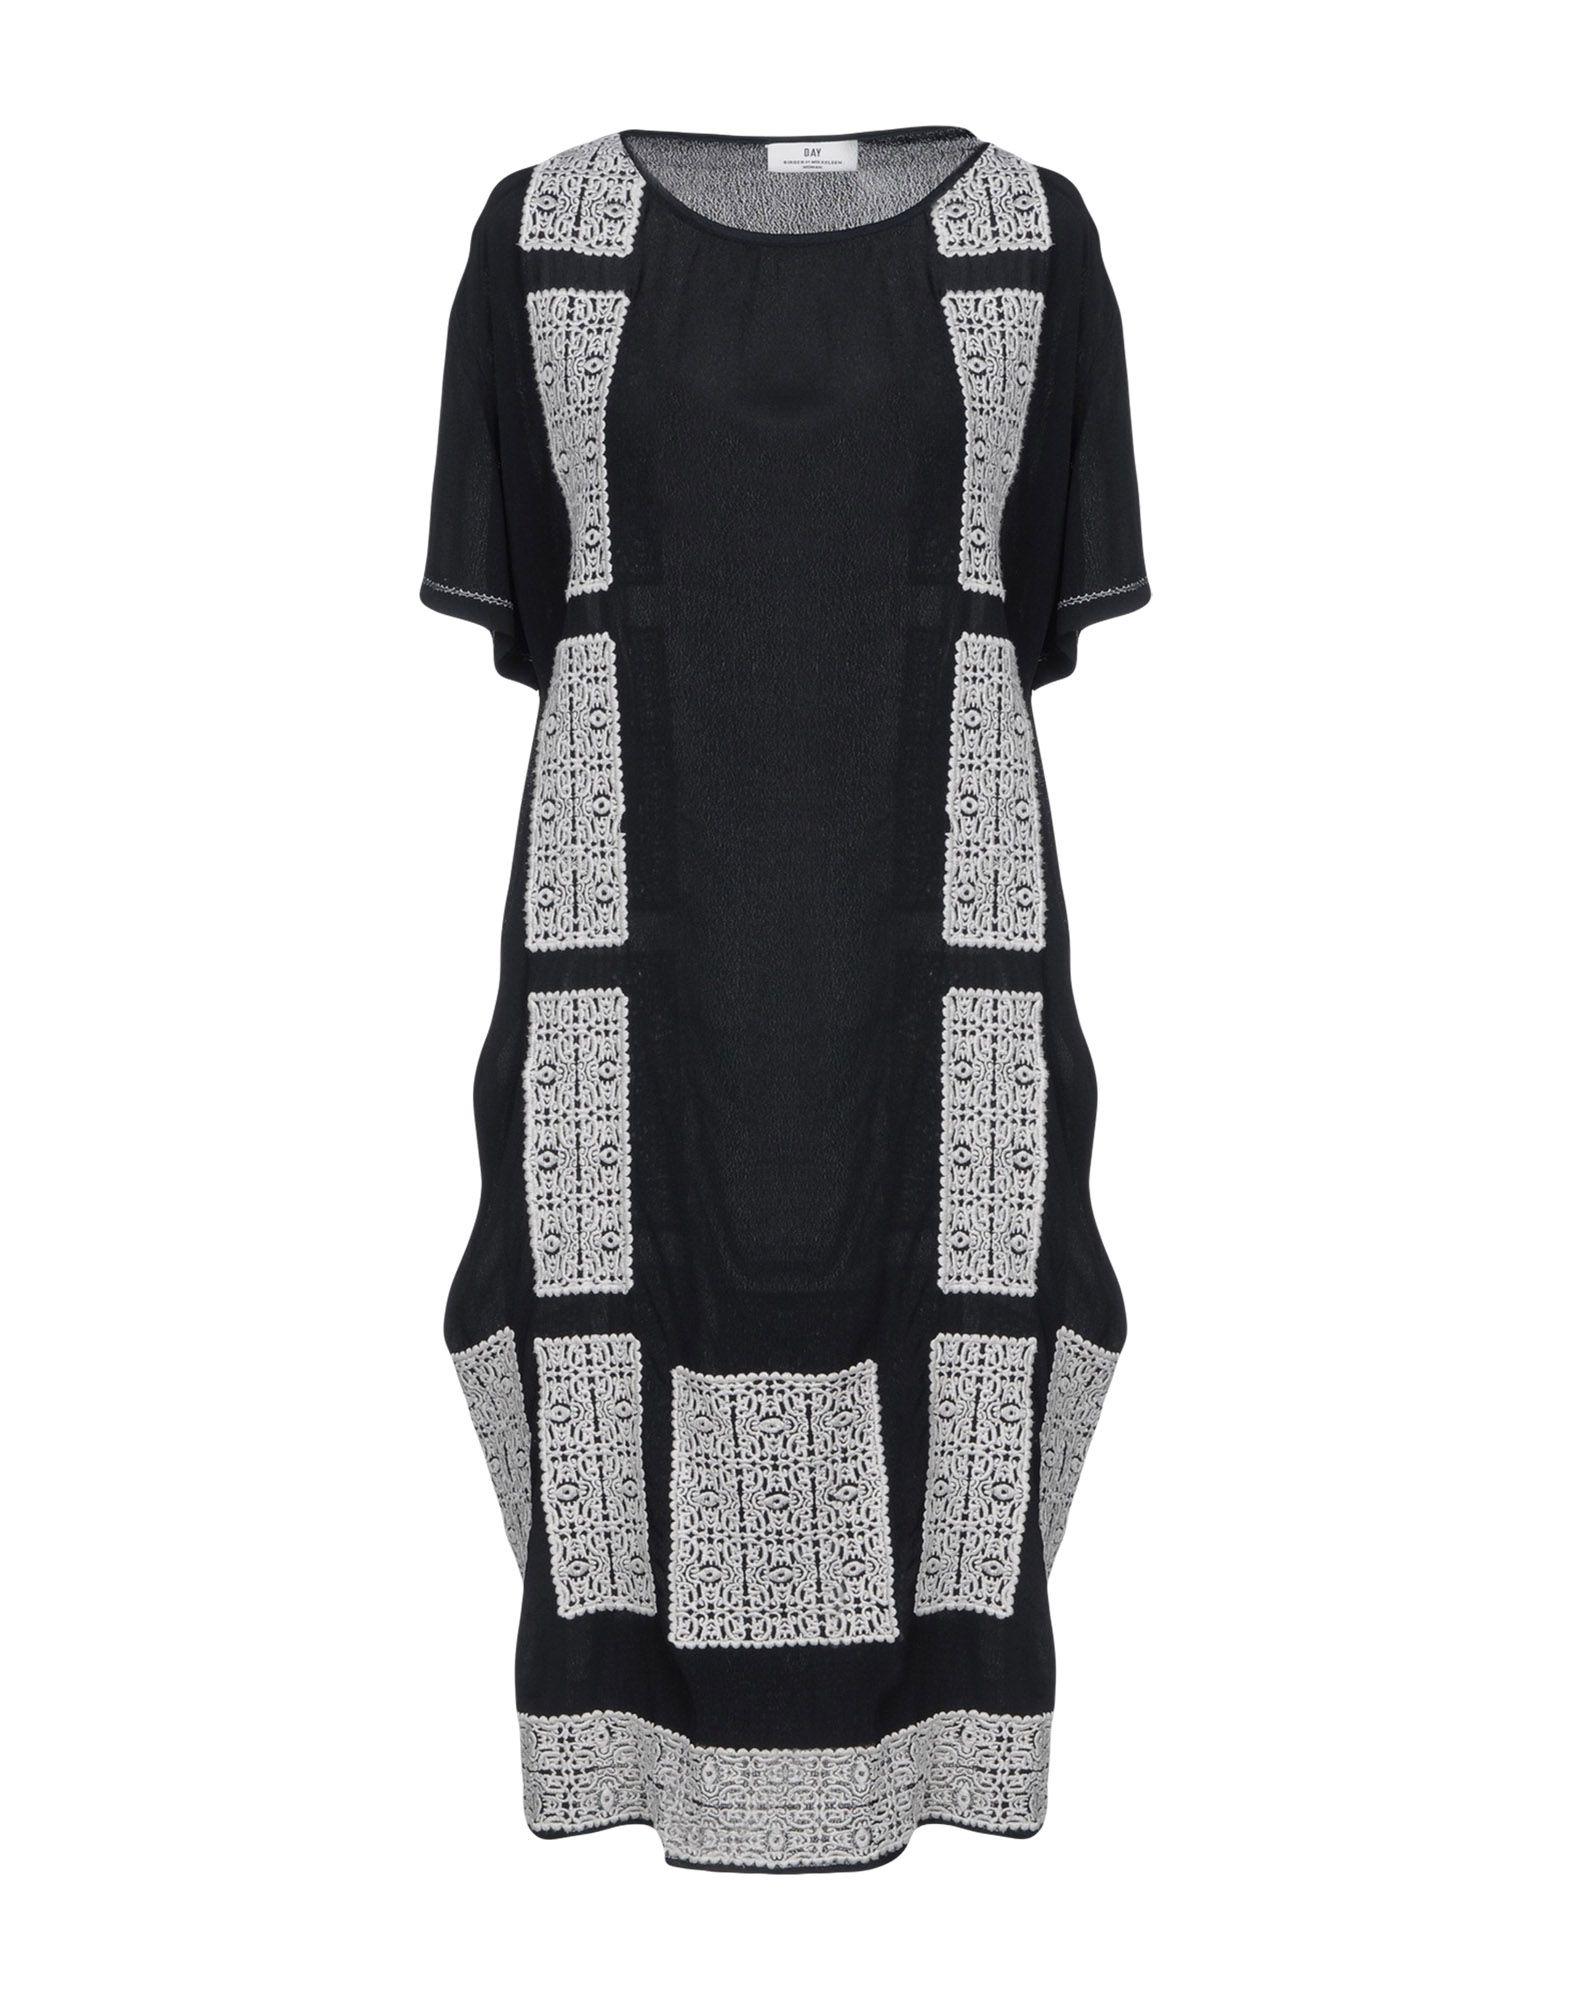 DAY BIRGER ET MIKKELSEN Short Dress in Black